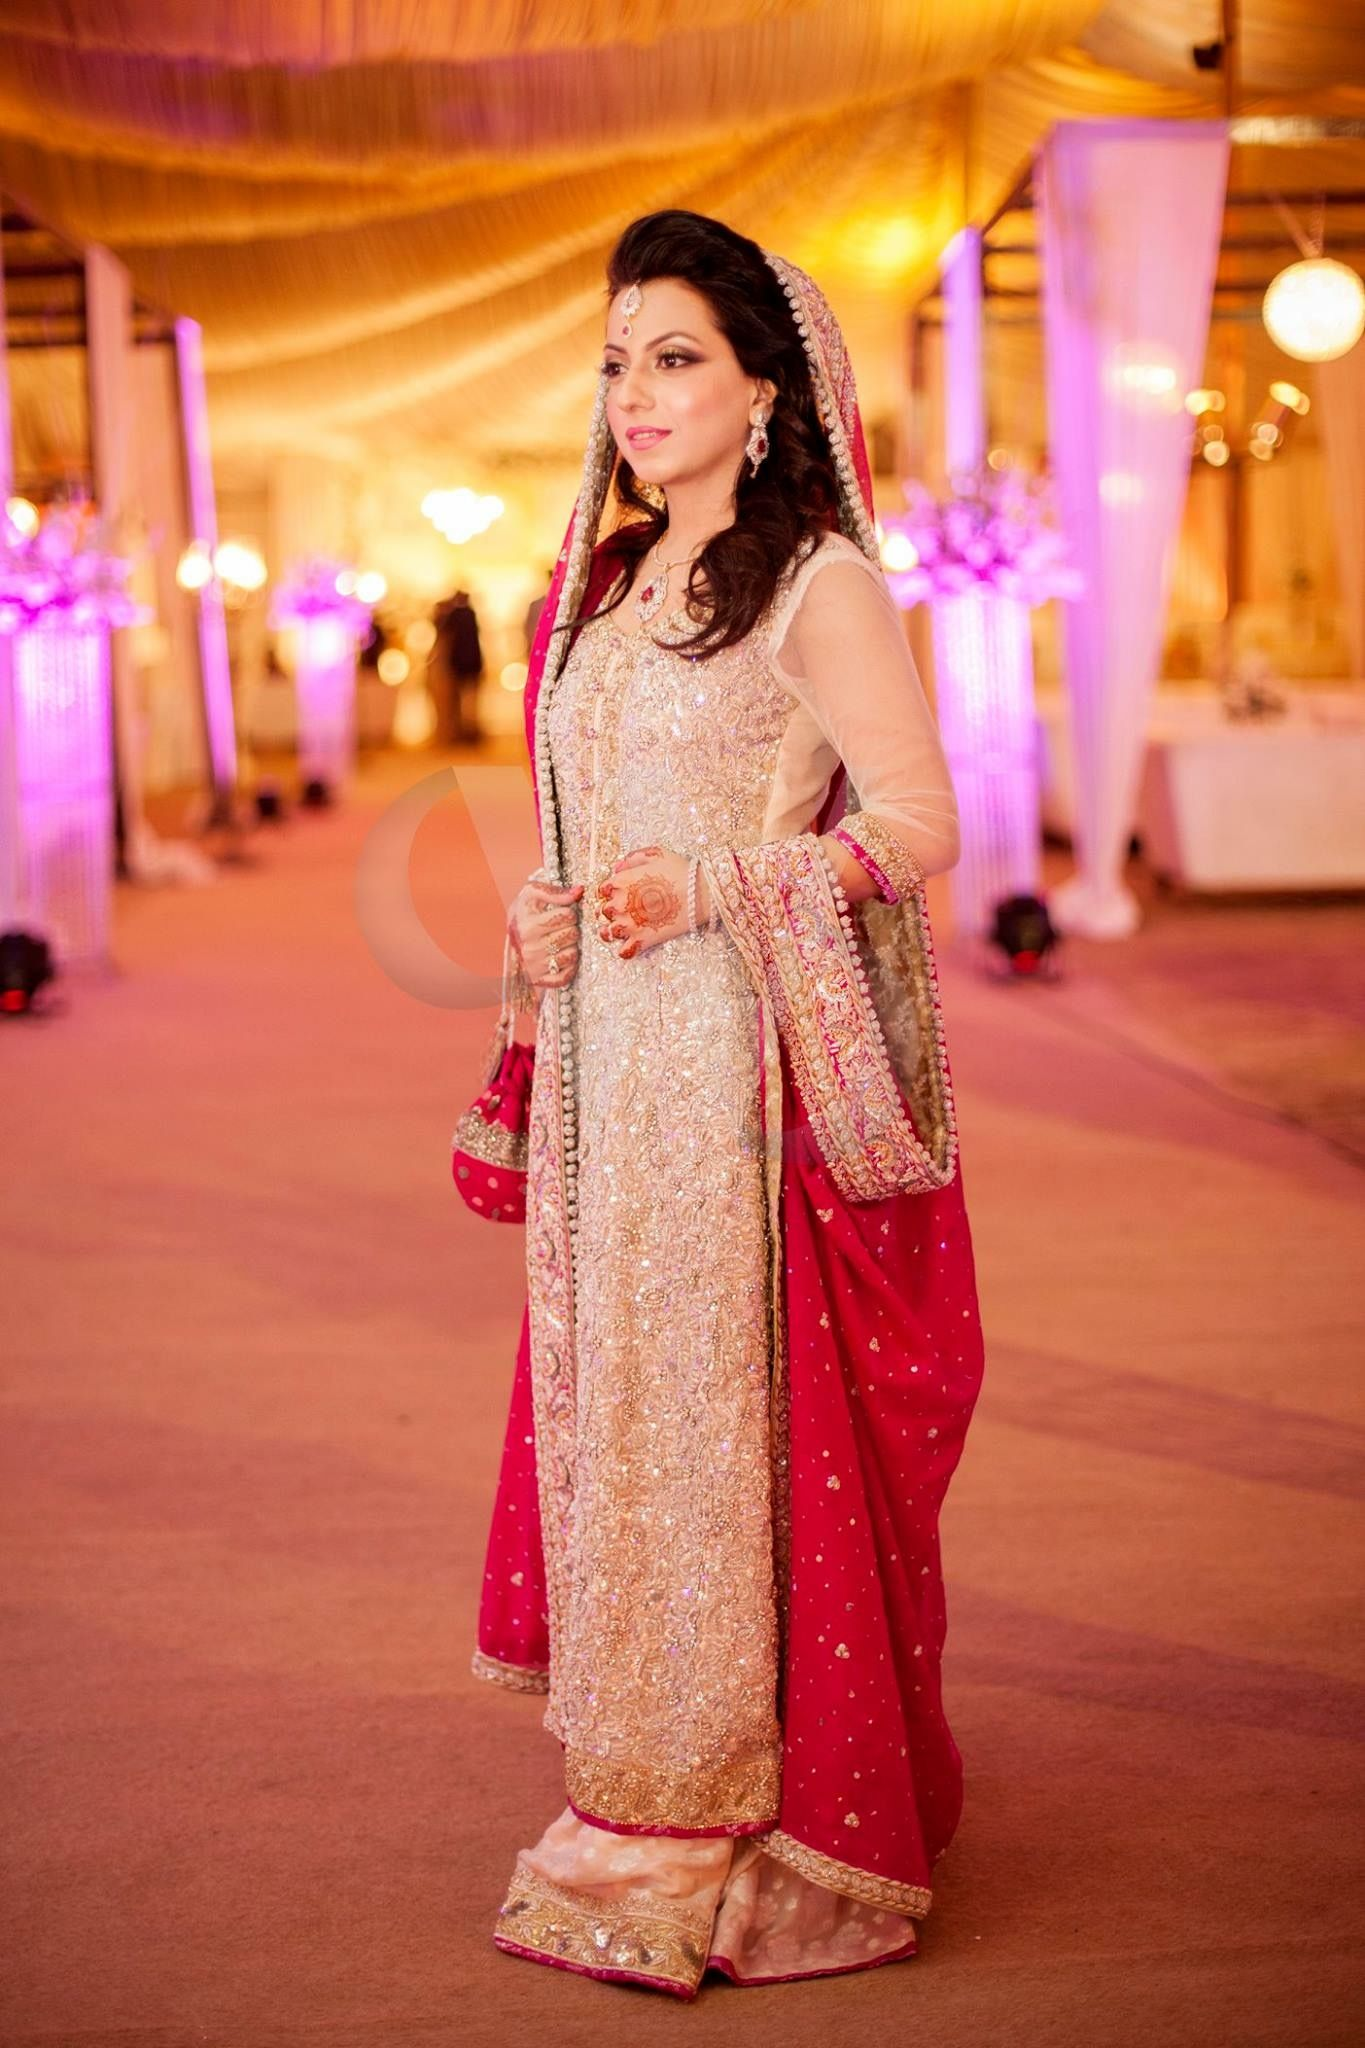 South asian wedding dresses  Pin by Syedaghania Fatima on Baat pakiEngagement nikkah dresses